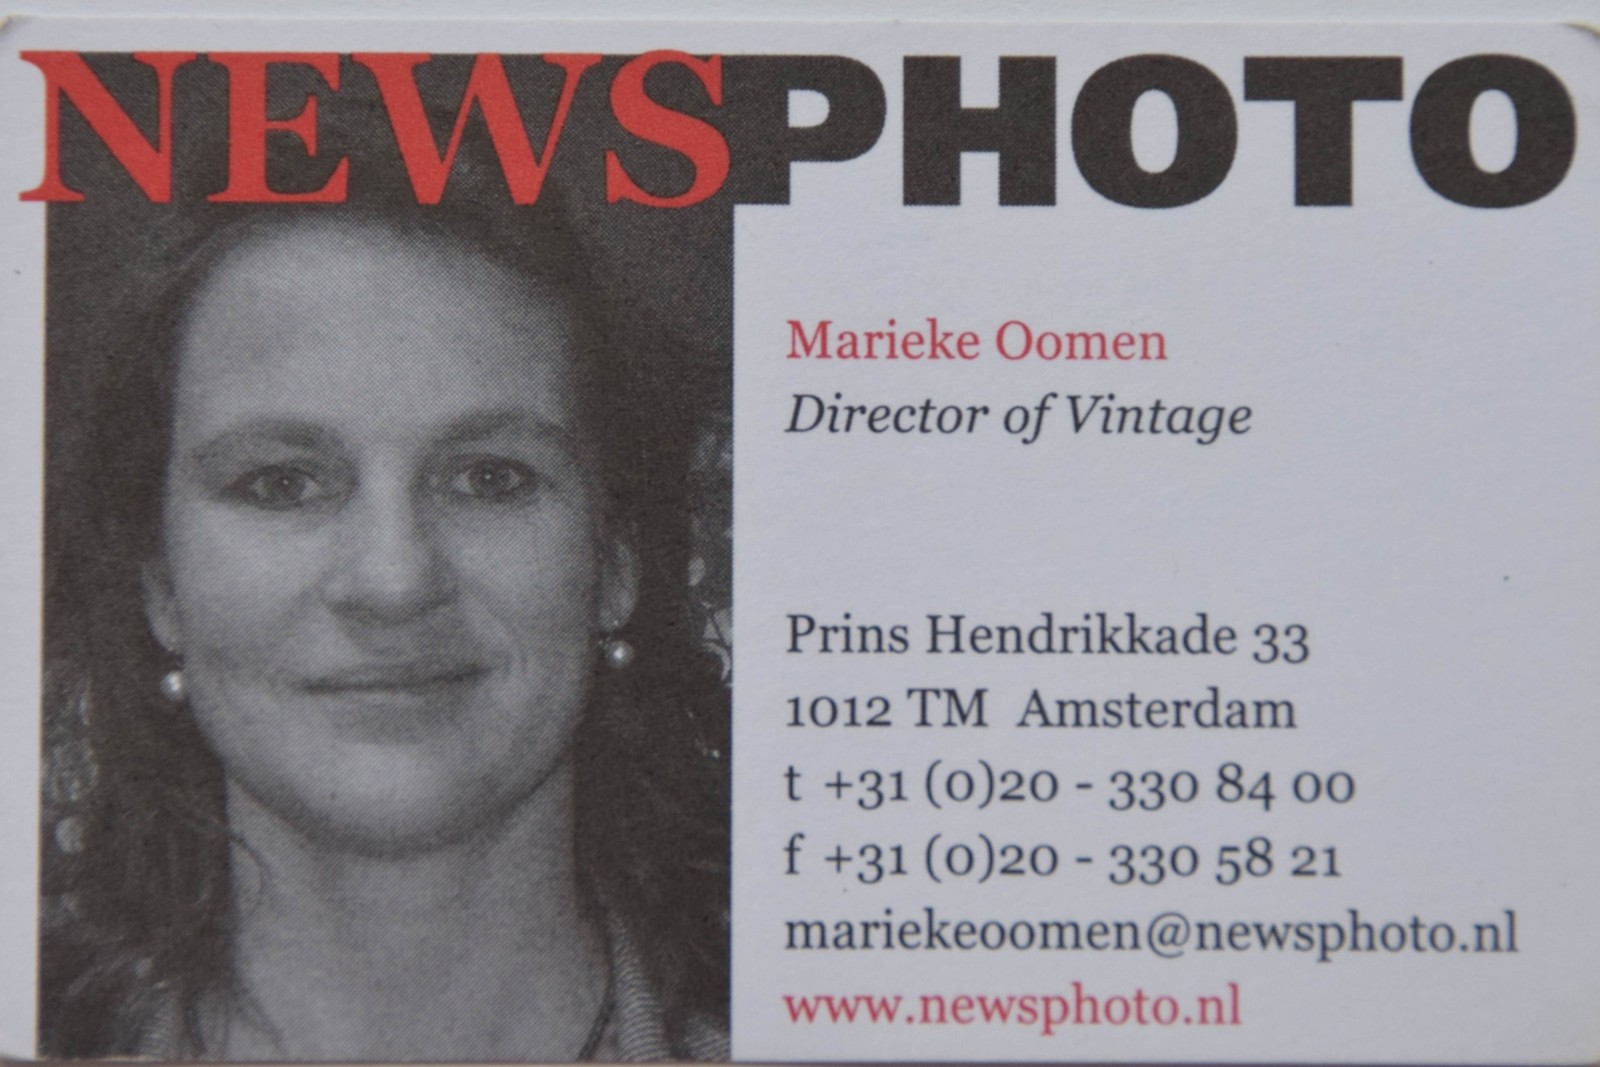 visitekaartje newsphoto low